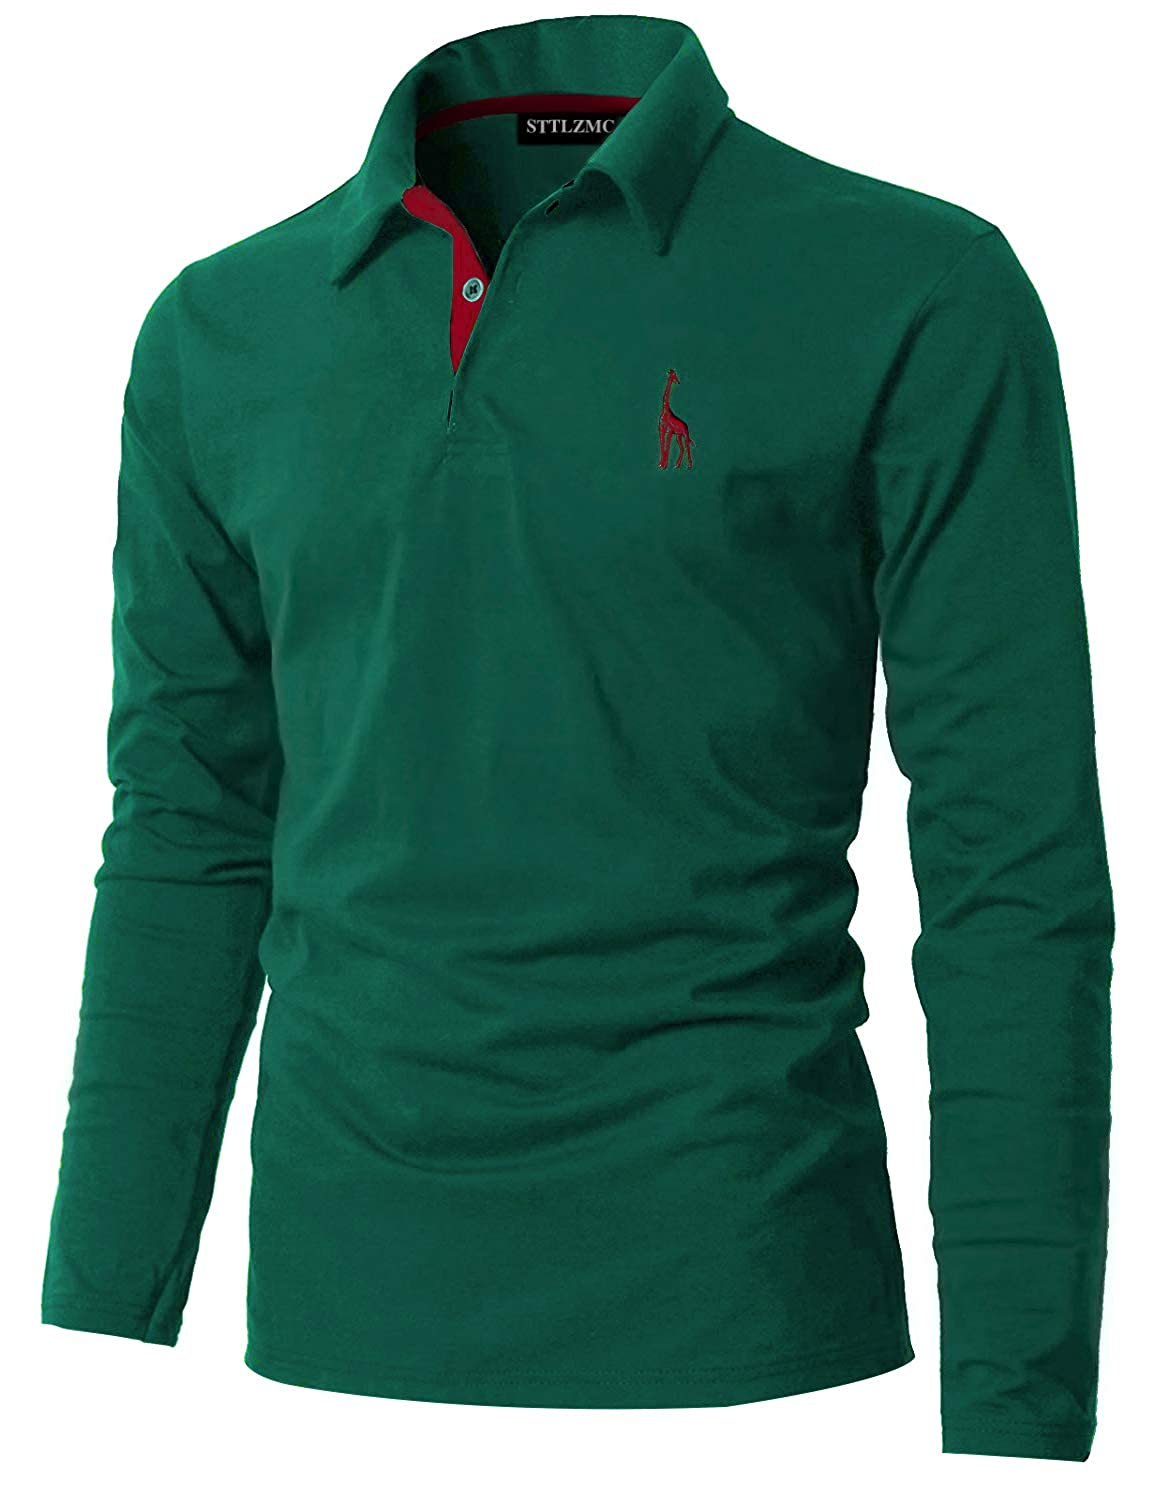 STTLZMC Mens Casual Long Sleeve Polos T-Shirts Basic Designed with Giraffe Embroidery LSMAN01115LSC